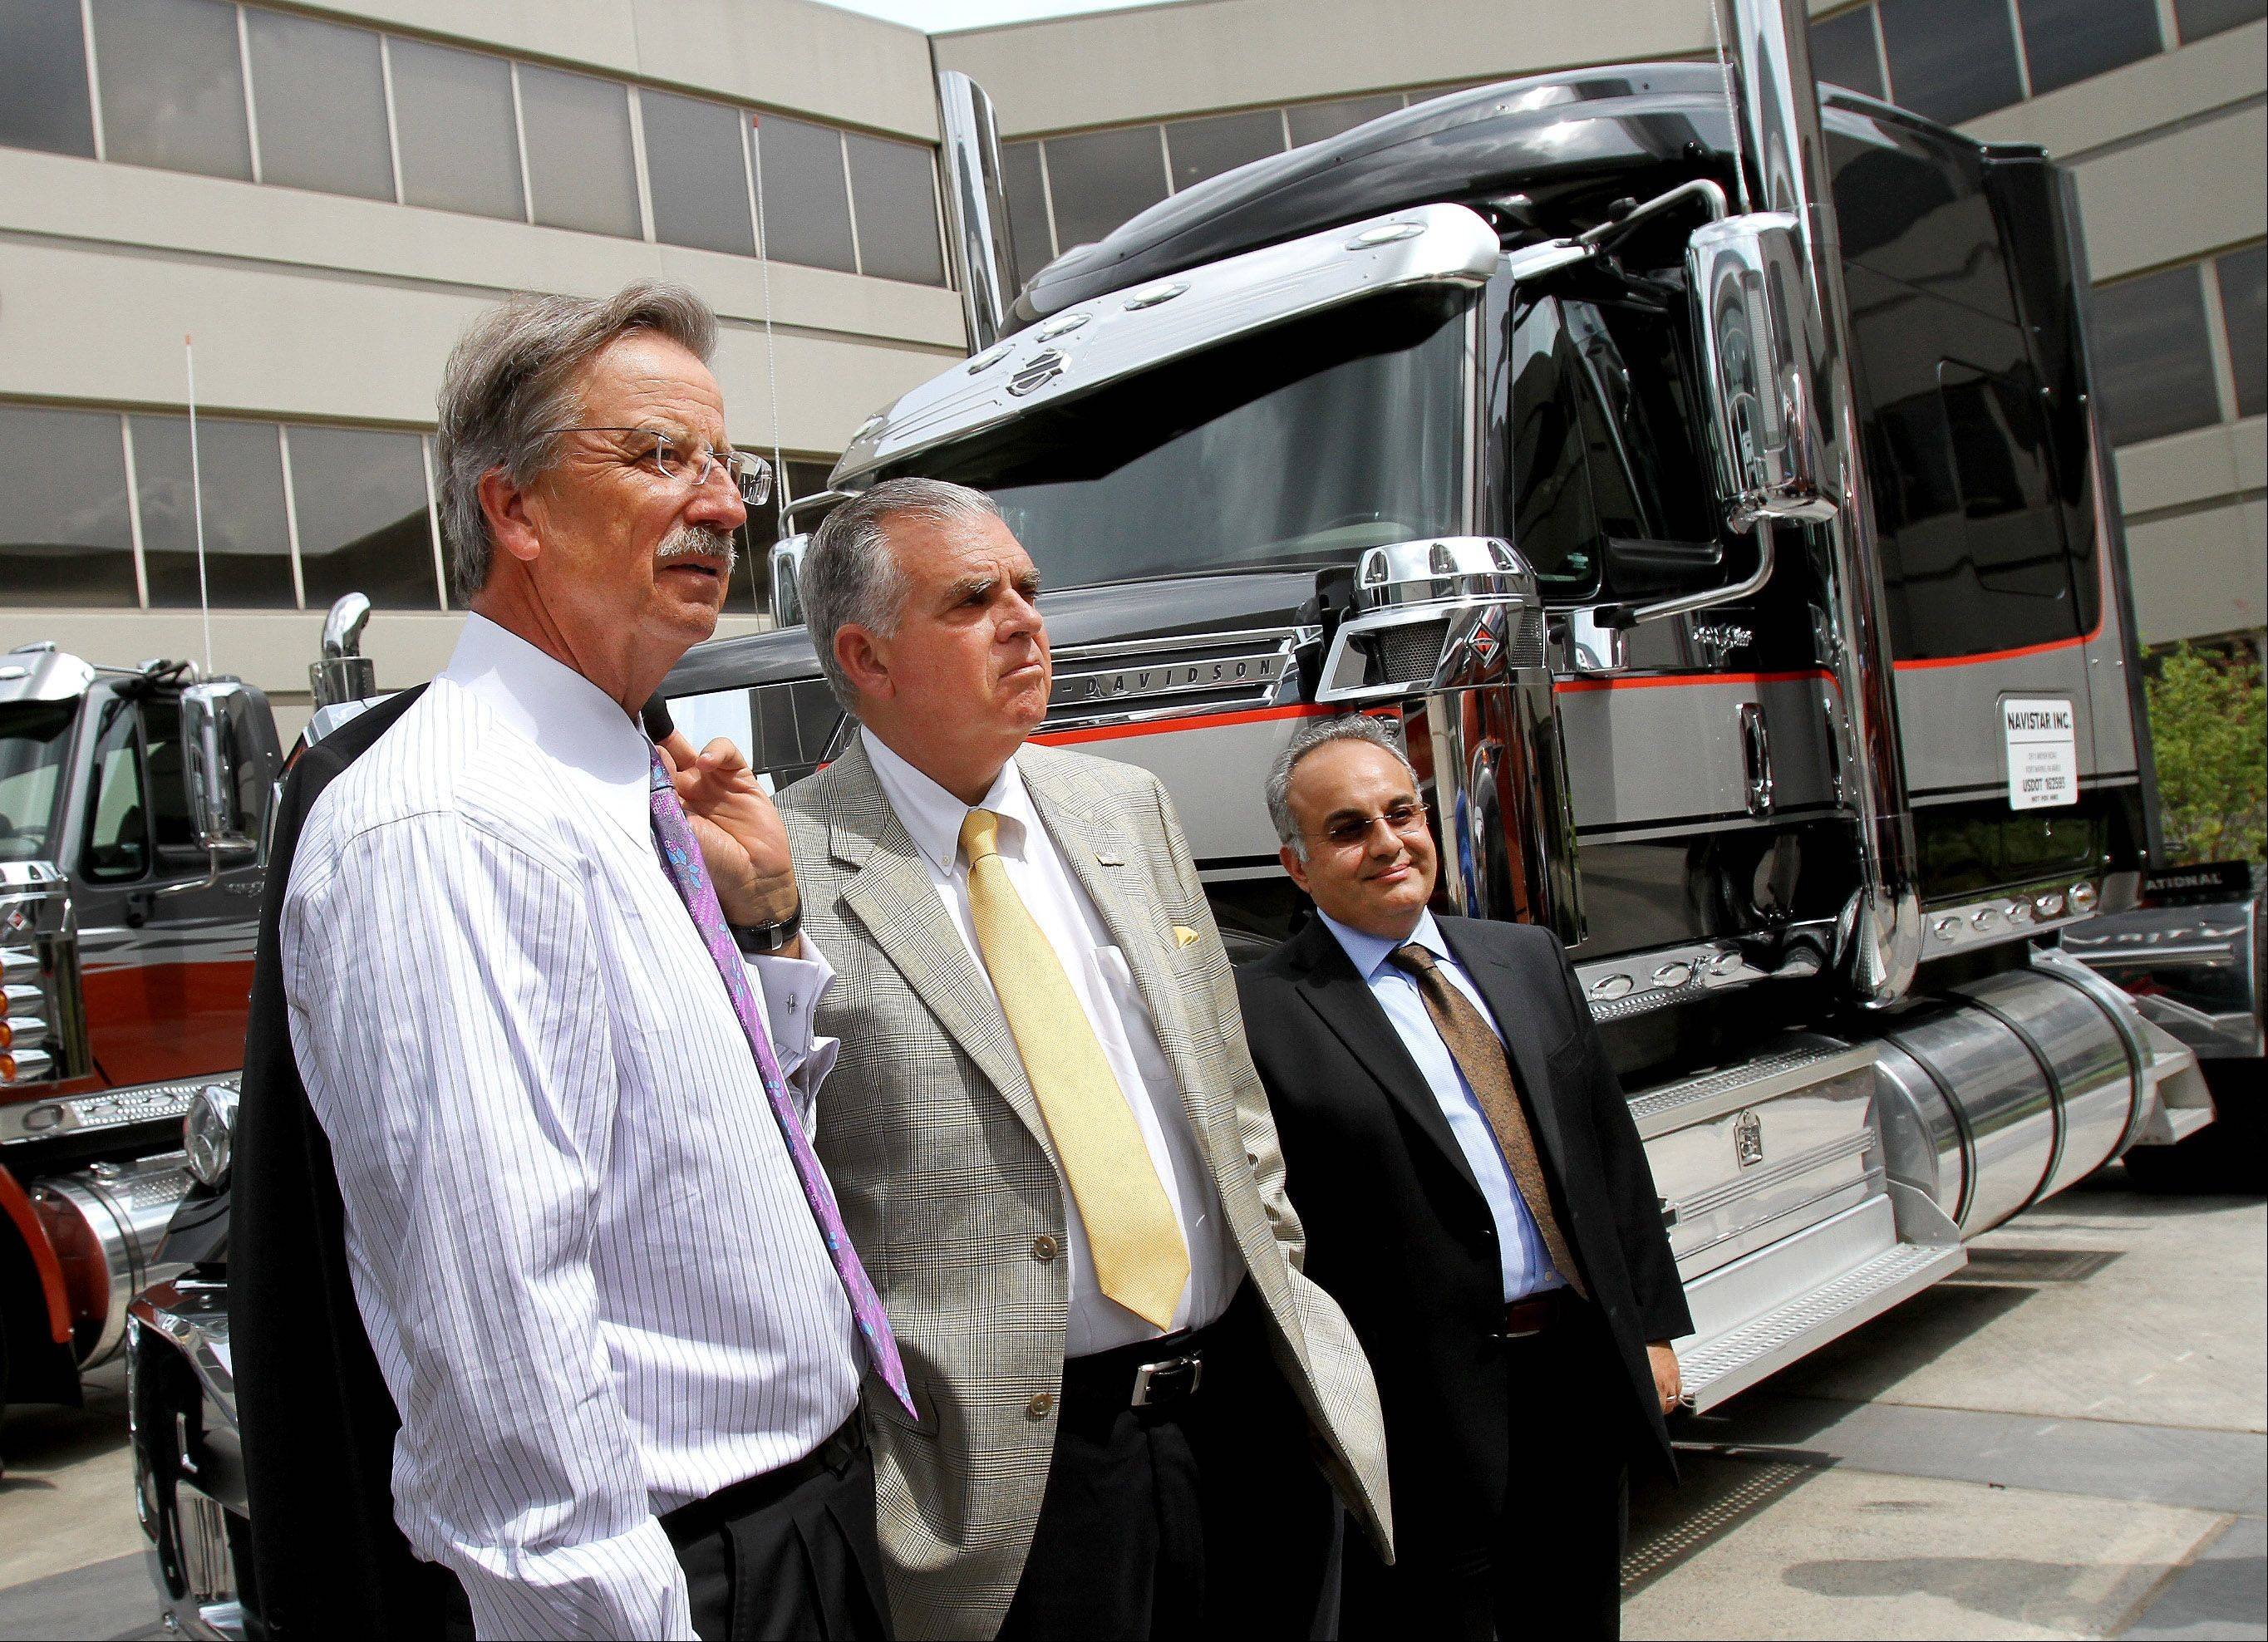 Dan Ustian, left, chairman, president and CEO and Ramin Younessi, right, group vice president of product development, show U.S. Transportation Secretary Ray LaHood, center, the latest inventory of trucks during his visit to Navistar in Lisle on Monday.